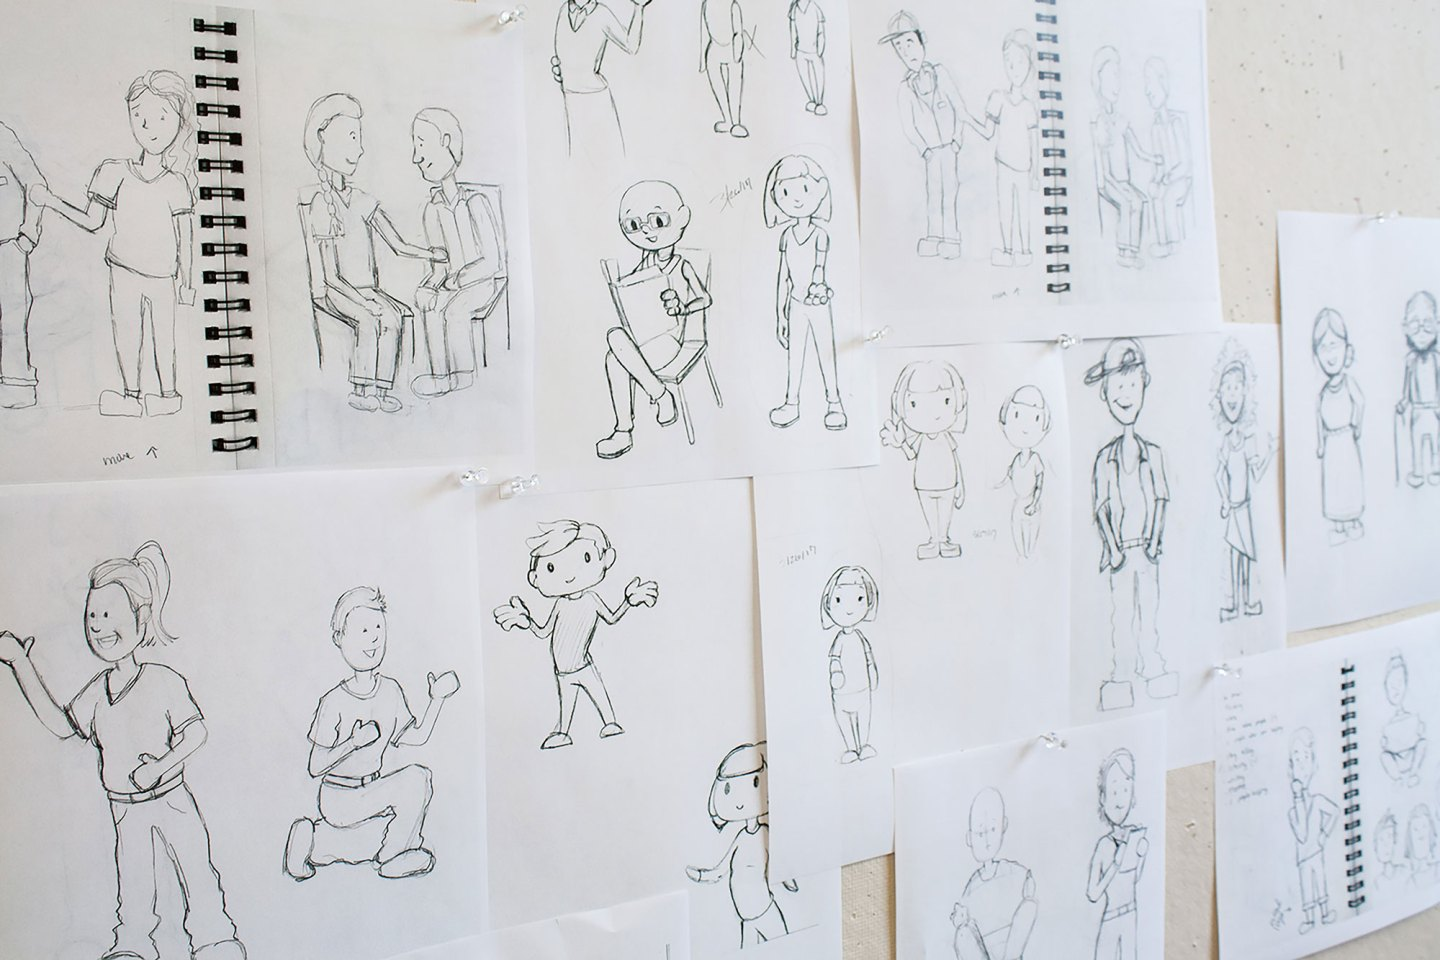 Our team's sketching process for creating The Facing Project's character illustrations.